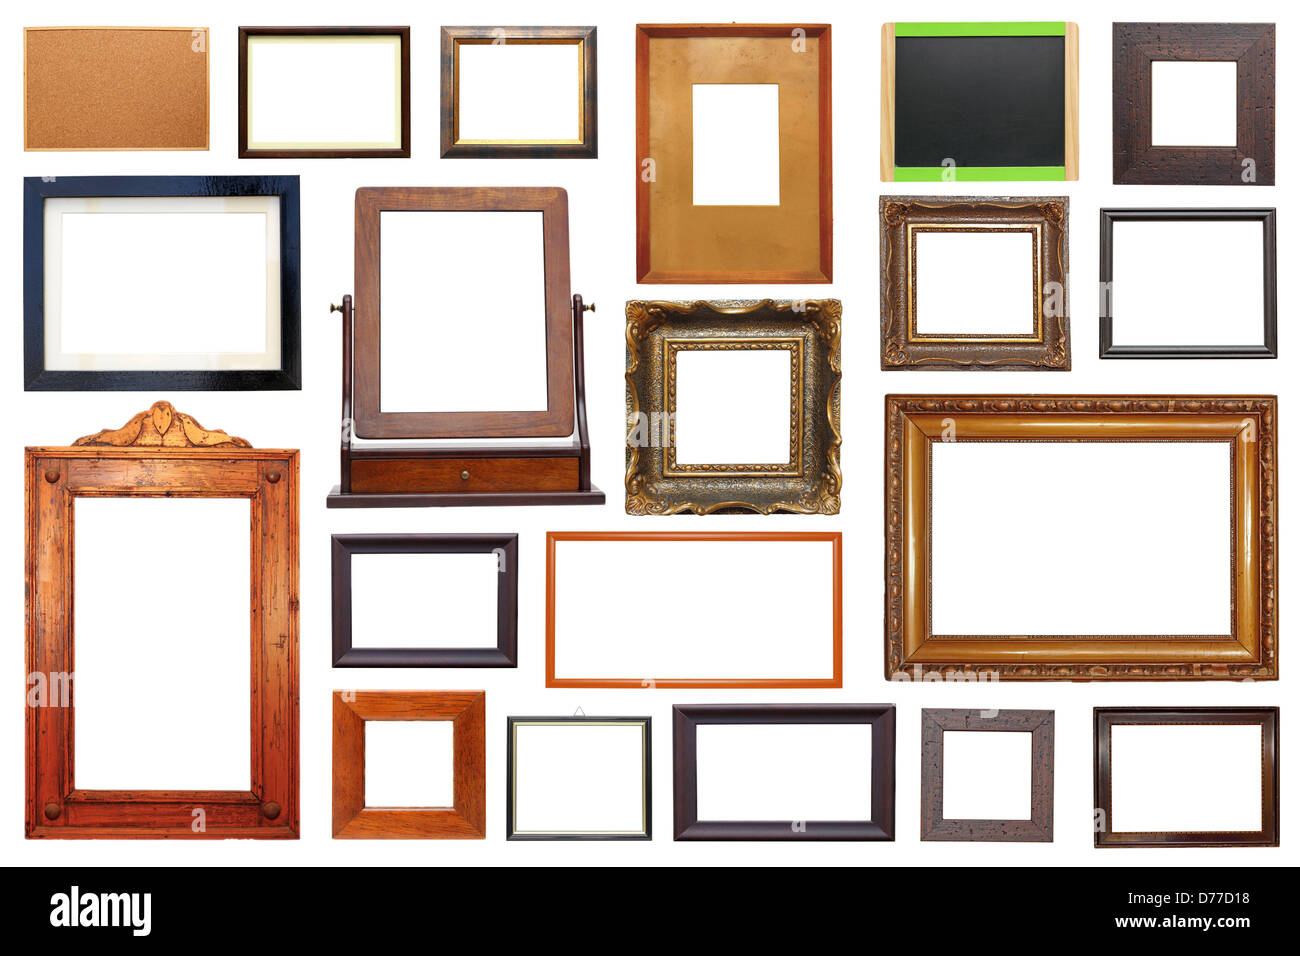 Large Collection Of Different Types Of Wooden Frames Isolated On